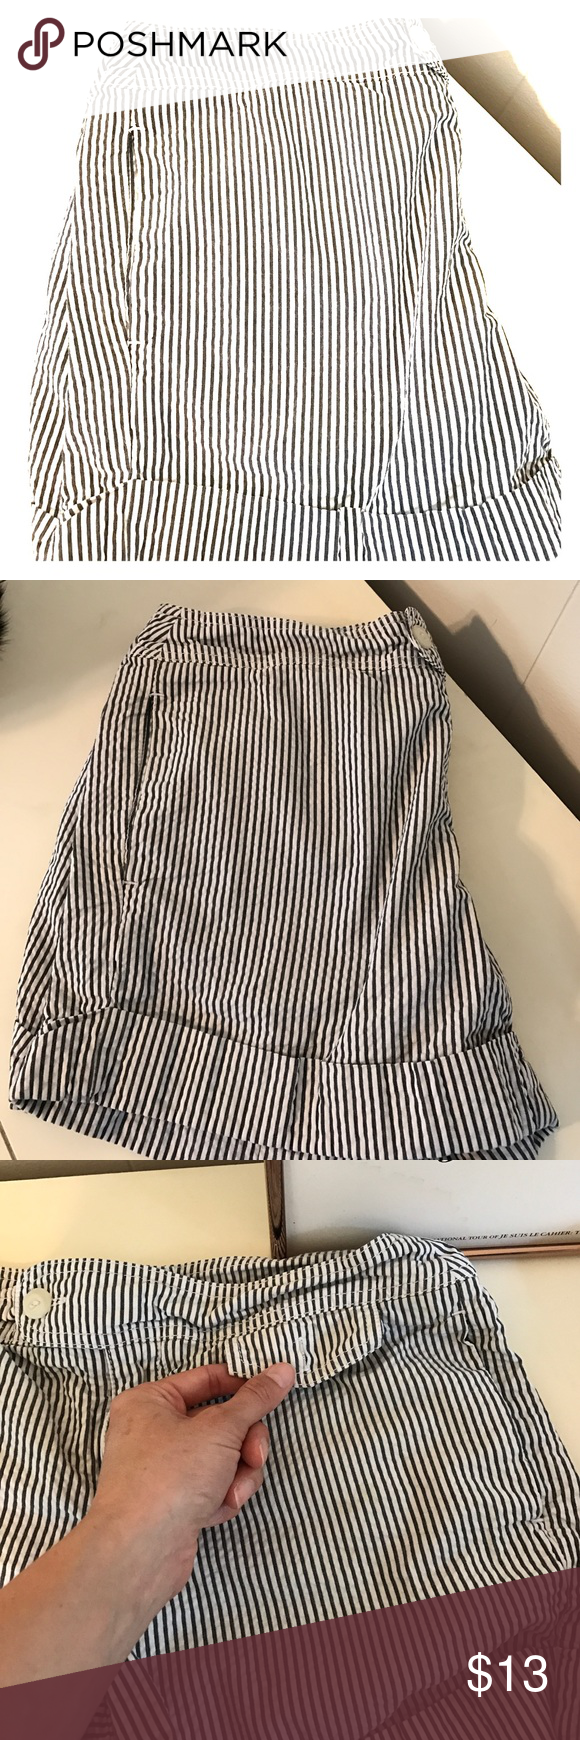 🌷SALE🌷Tommy Hilfiger seersucker shorts Tommy Hilfiger seersucker shorts with gray stripes. Very cute and classic look, and extra comfy. Good condition, missing button on front flap of little pocket...easy fix! Tommy Hilfiger Shorts